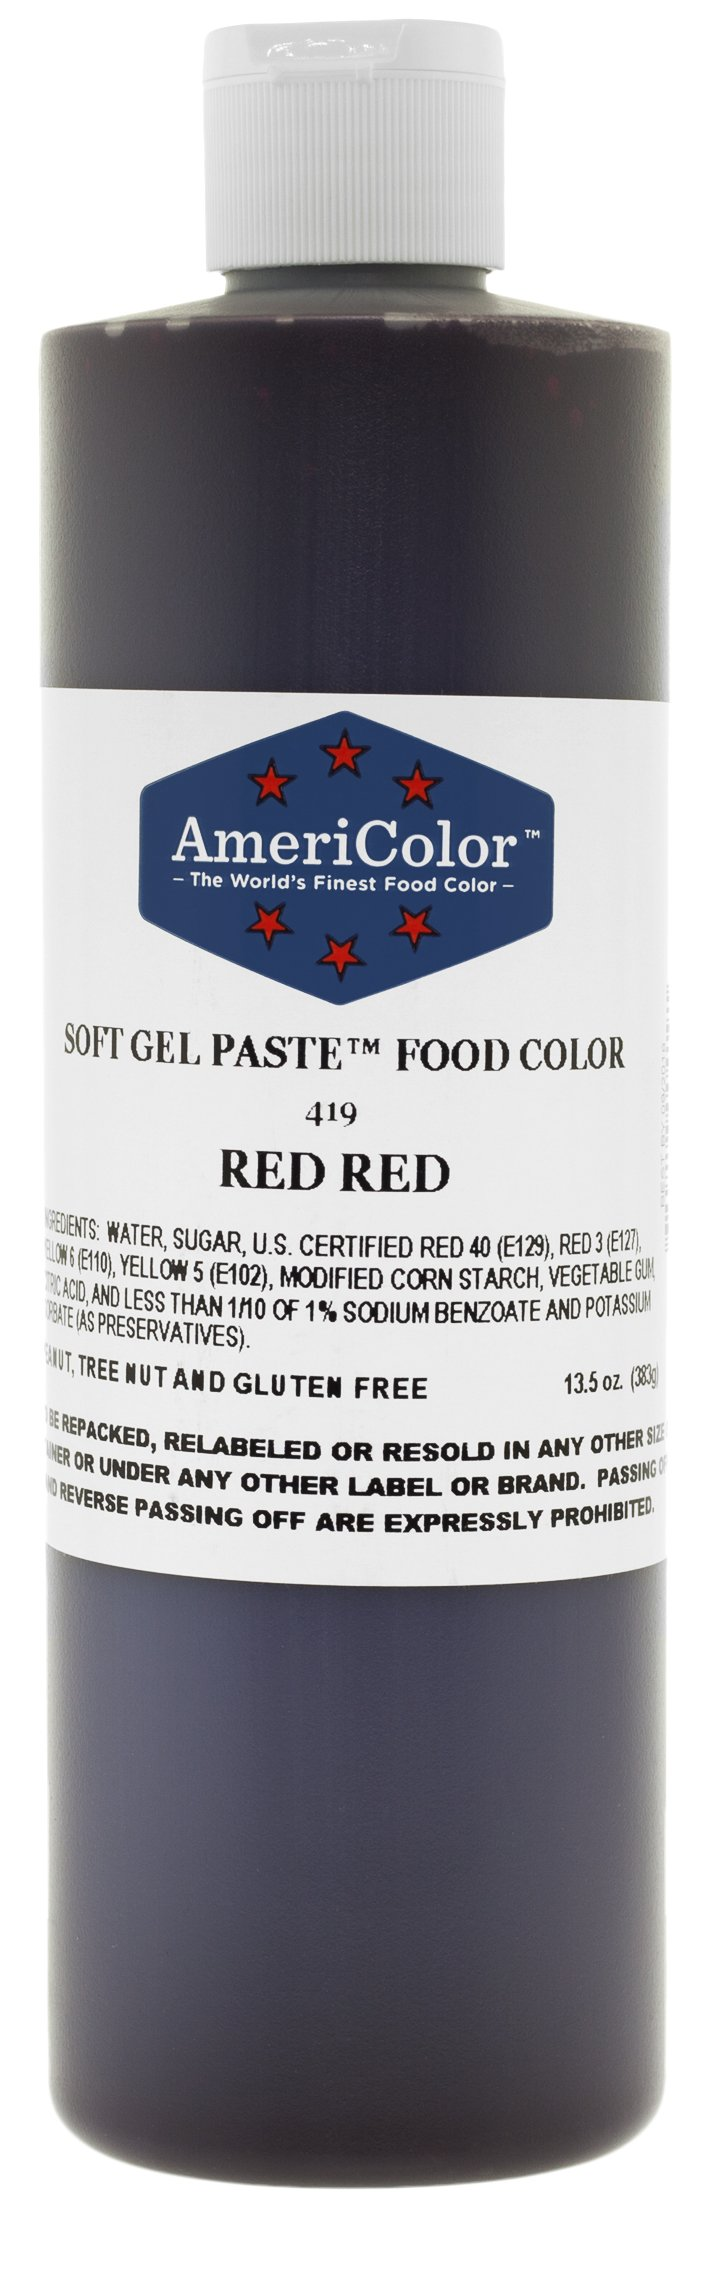 AmeriColor Red Red Soft Gel Paste Food Color, 13.5 oz